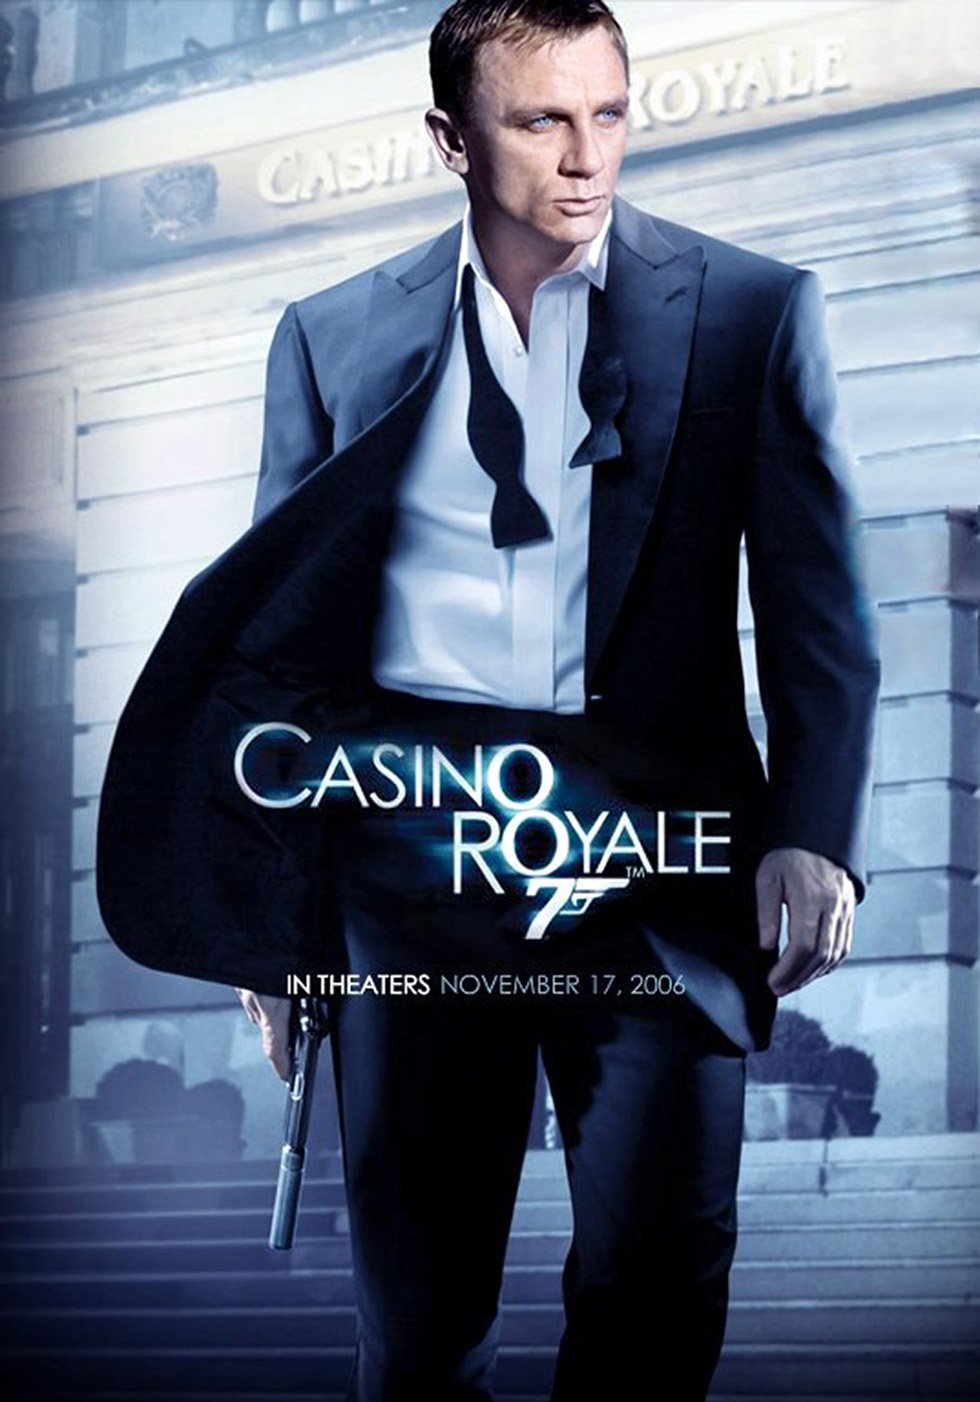 casino royale film